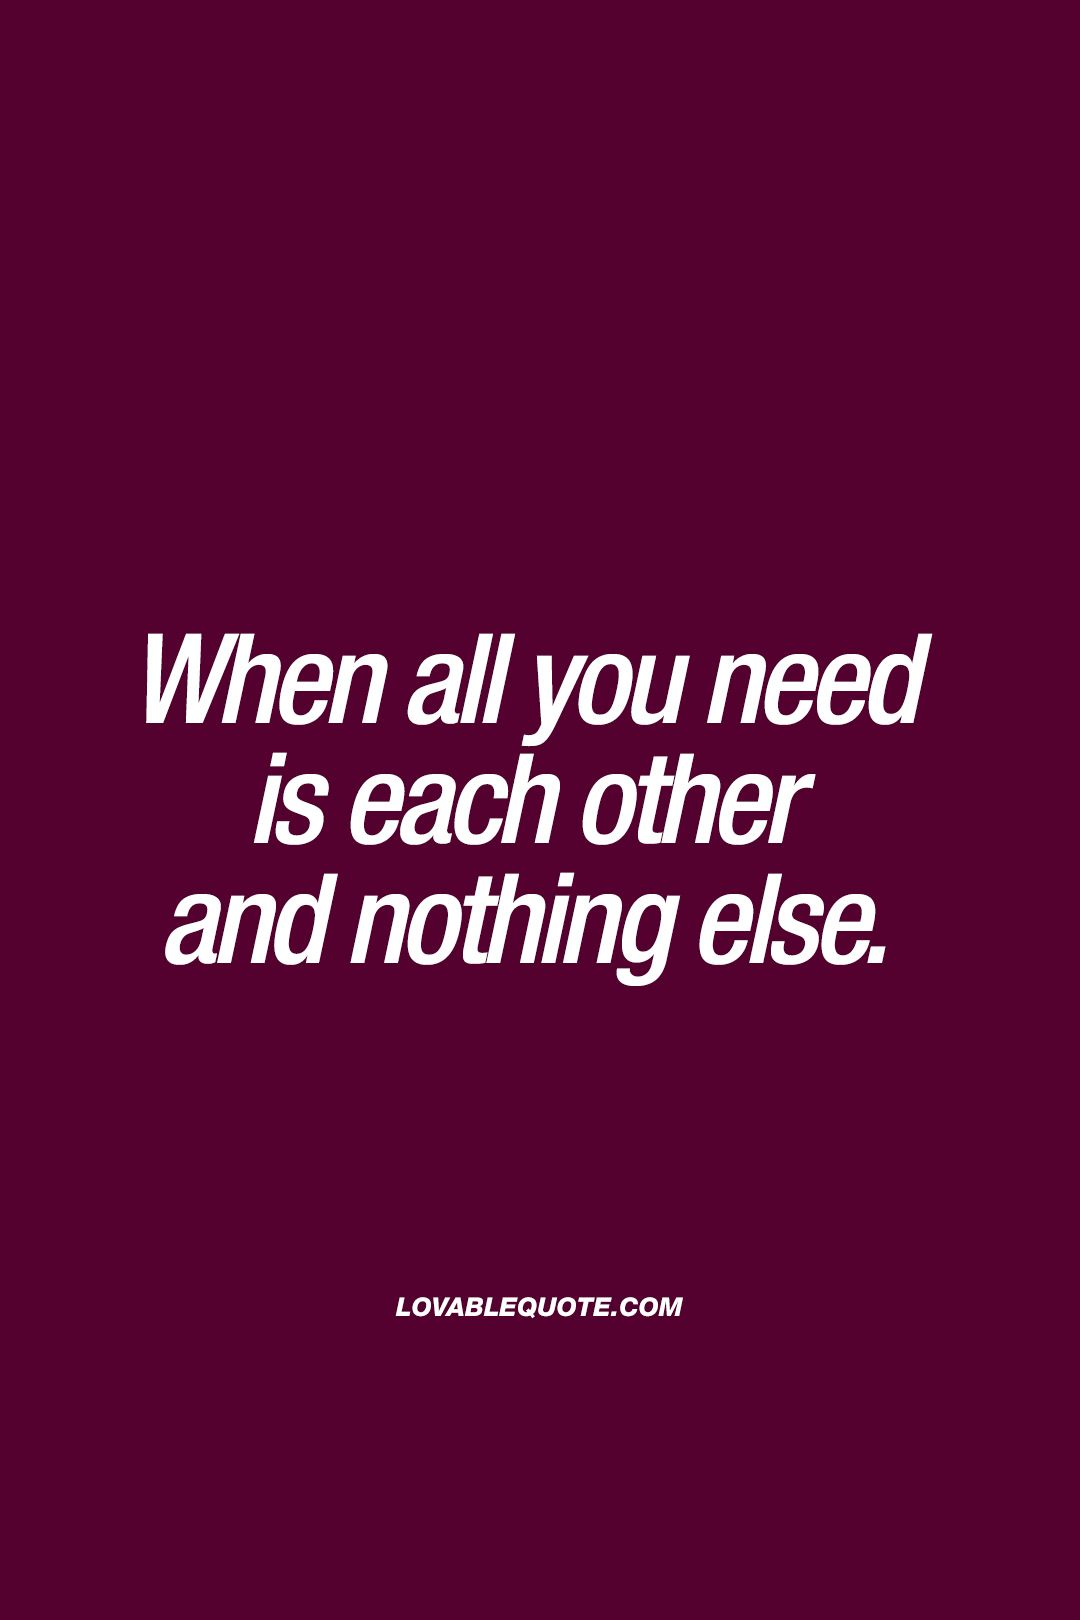 Need Love Quotes When All You Need Is Each Other And Nothing Else Truelove